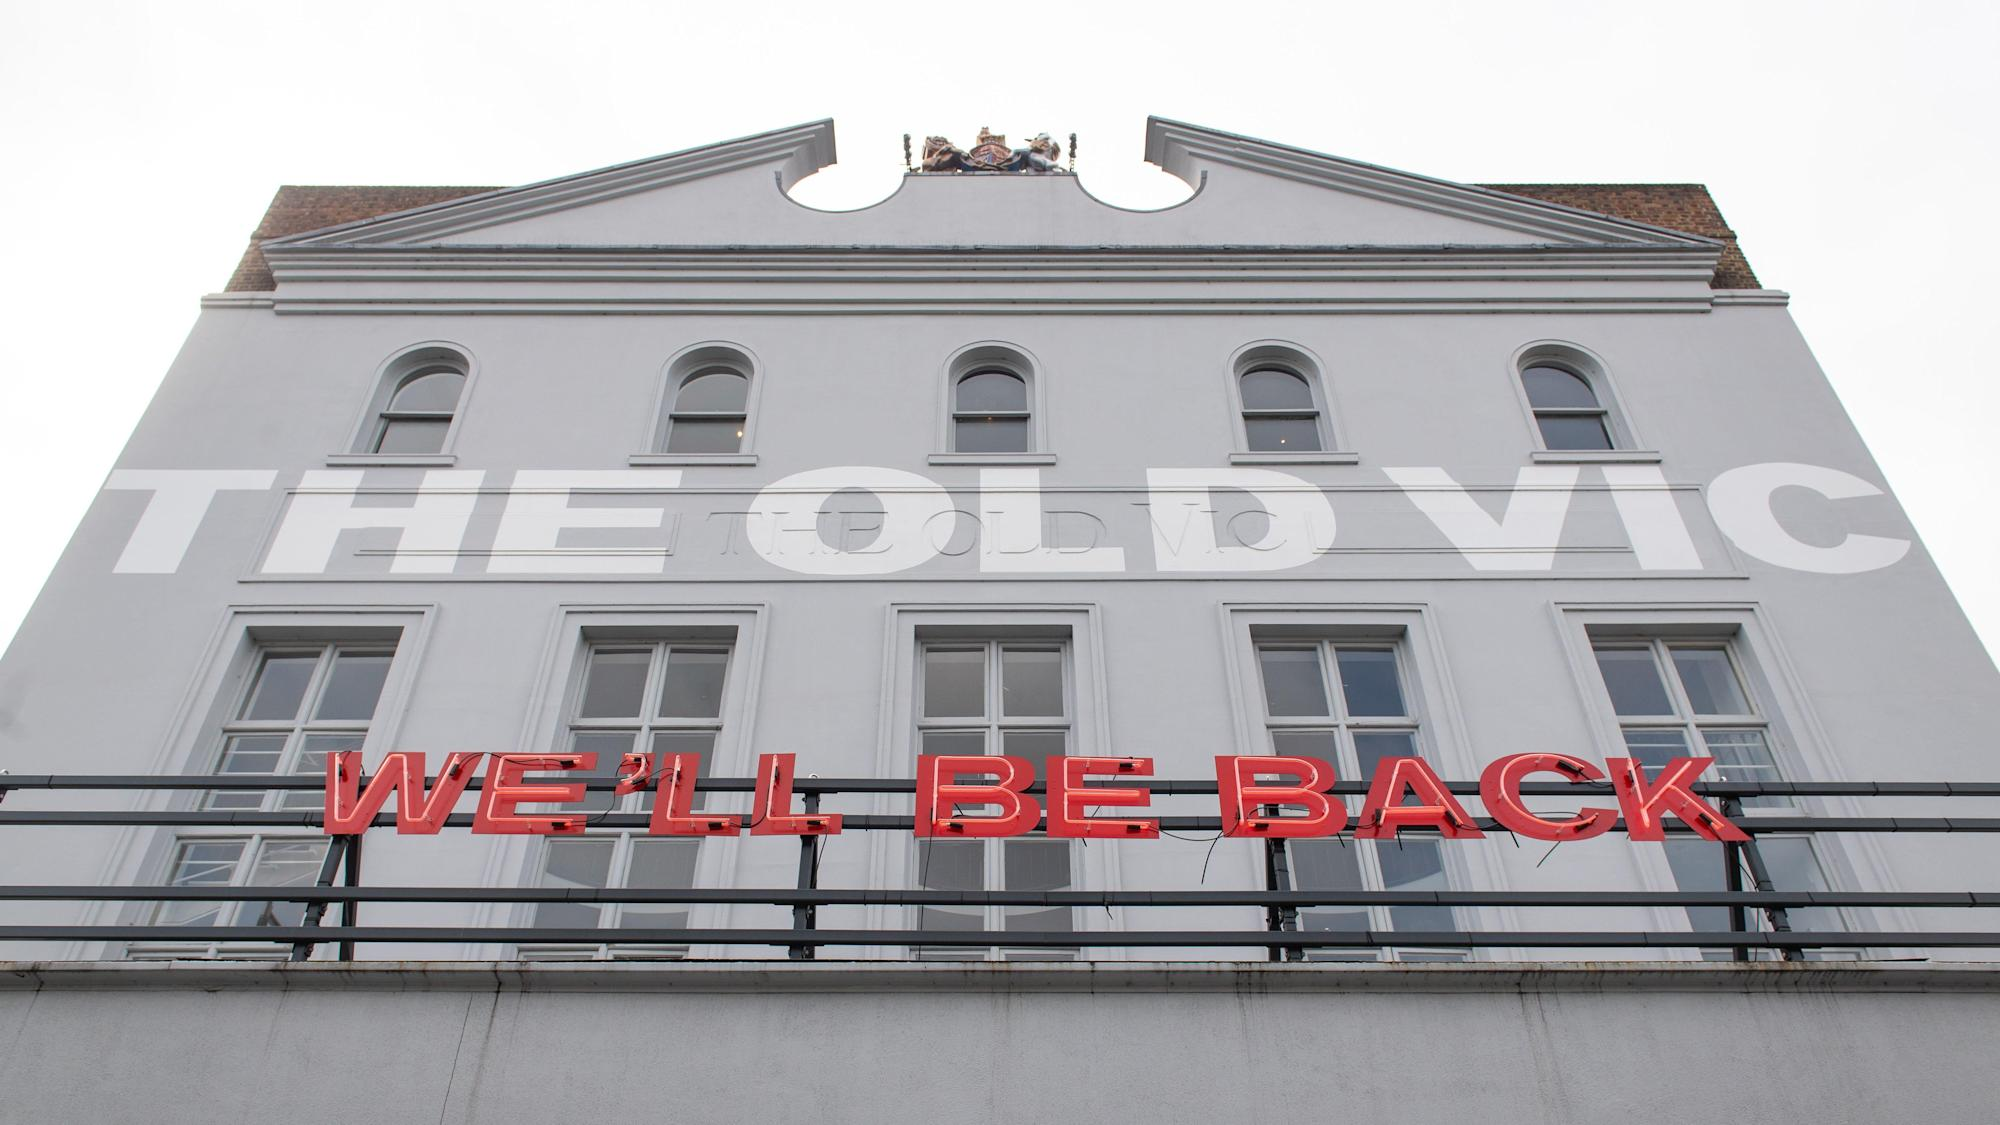 The Old Vic announces its Back Together season